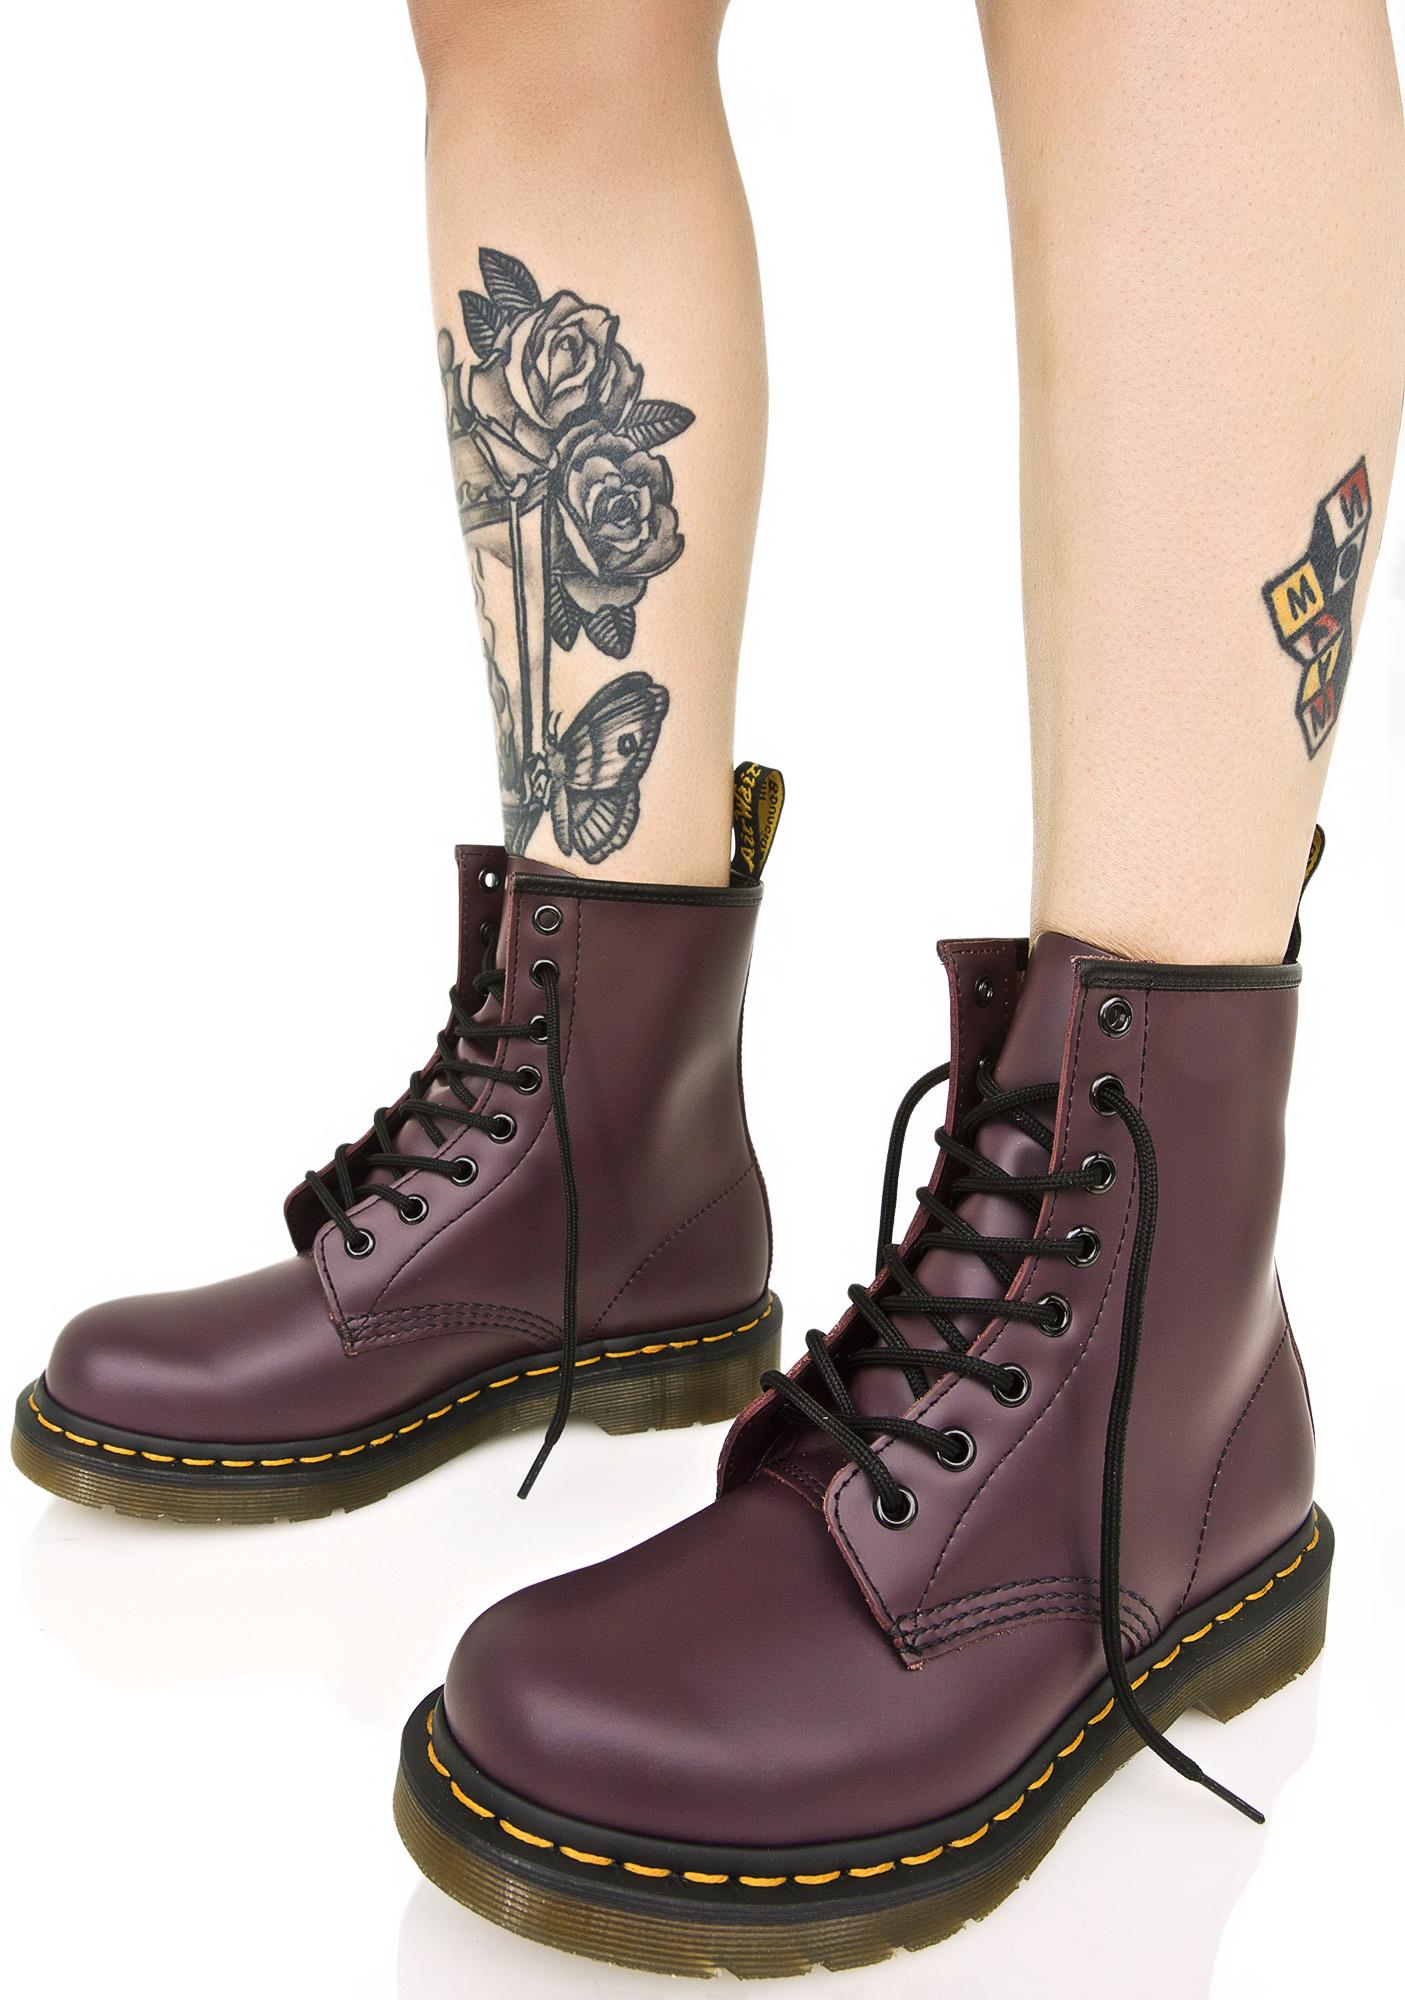 Dr Martens Boots dr. martens royal purple 1460 8 eye boots EVKHEKE